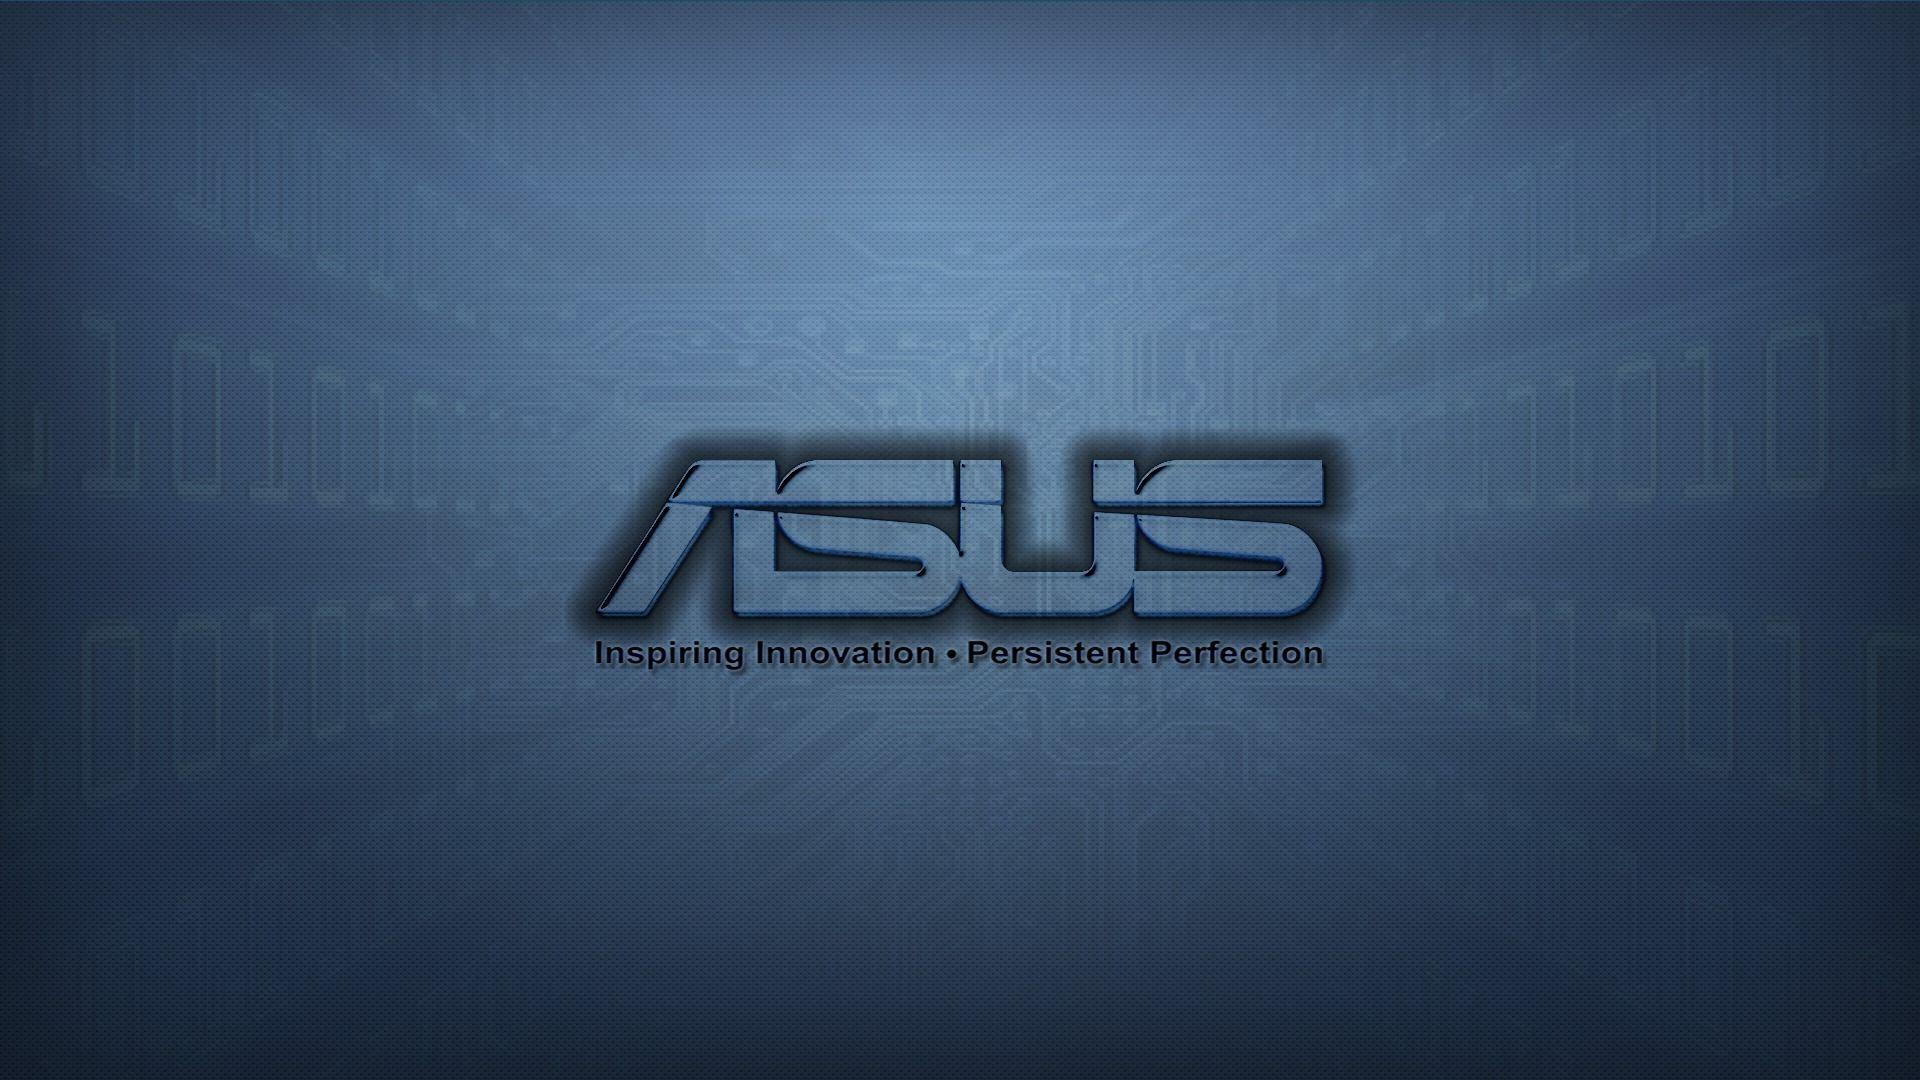 Asus Hd Wallpapers 1920X1080